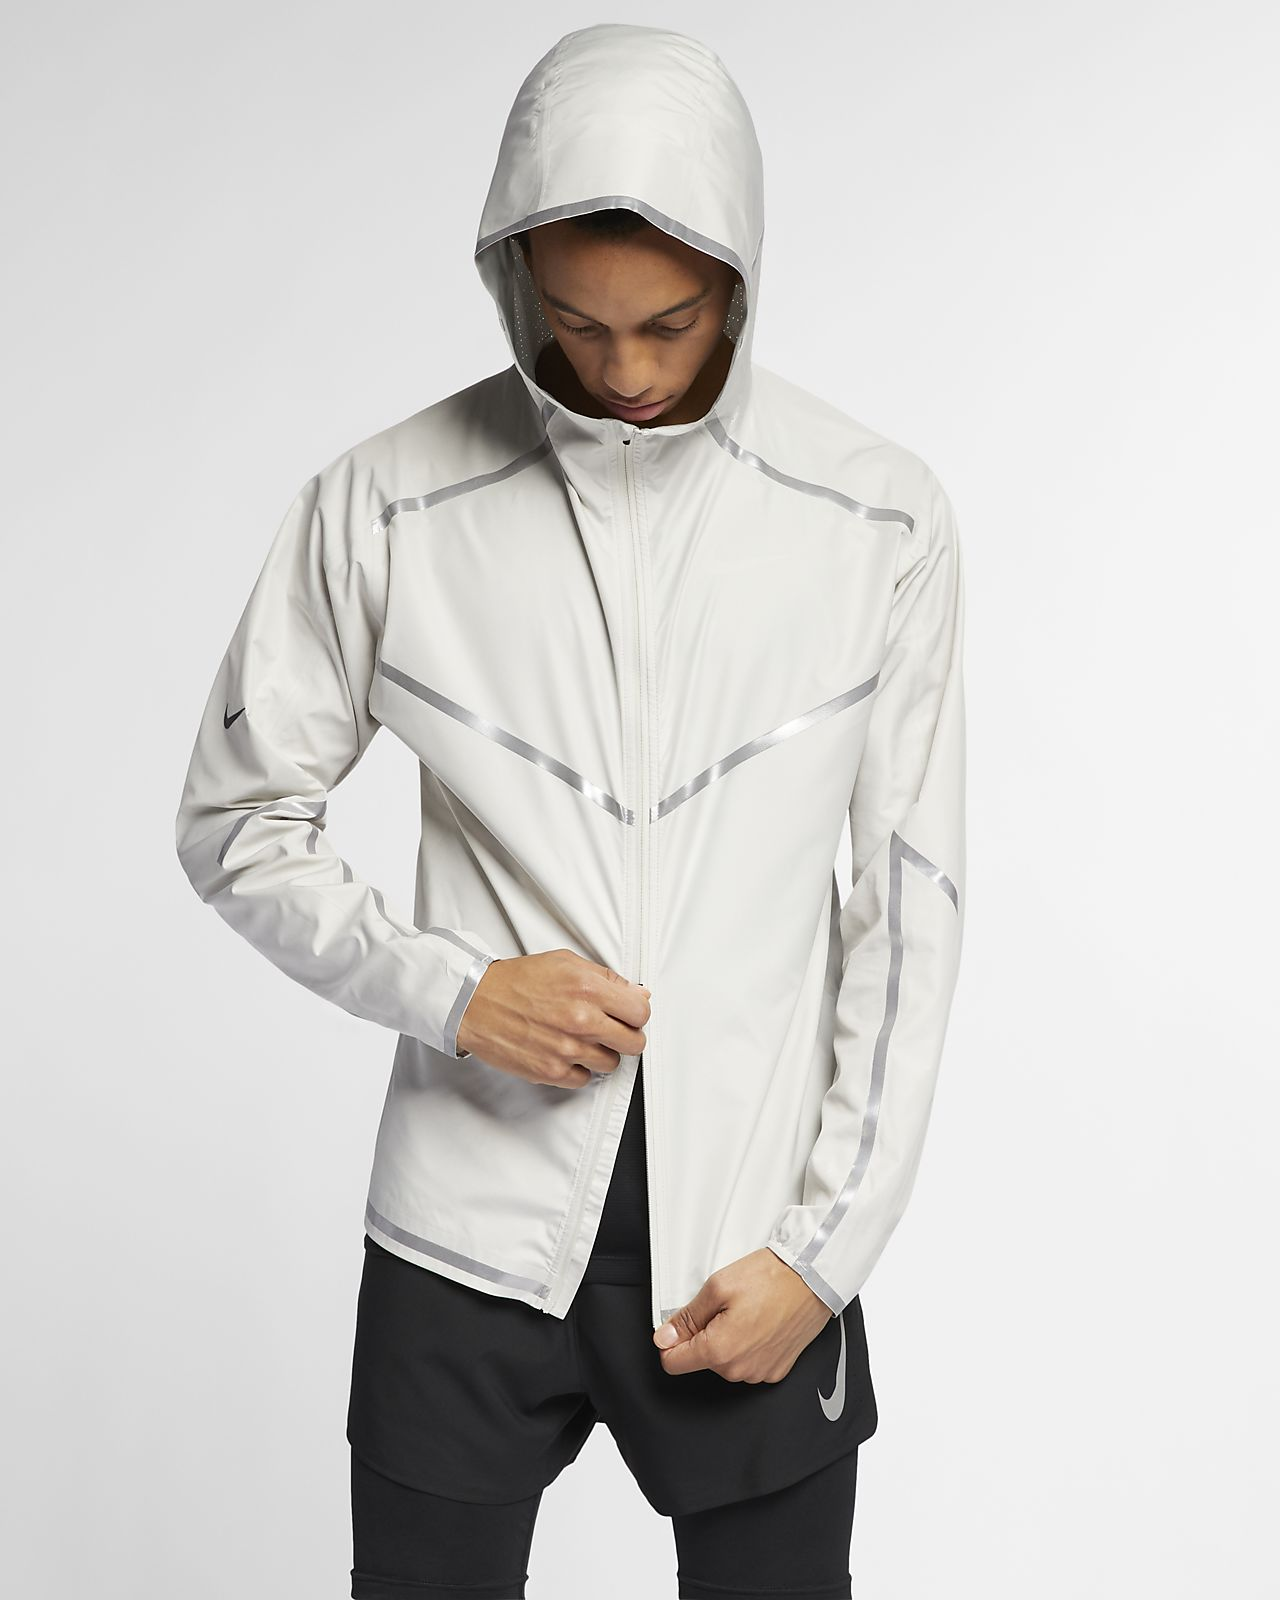 77679a9d38 Nike Windrunner Tech Pack Men s Running Jacket. Nike.com NL